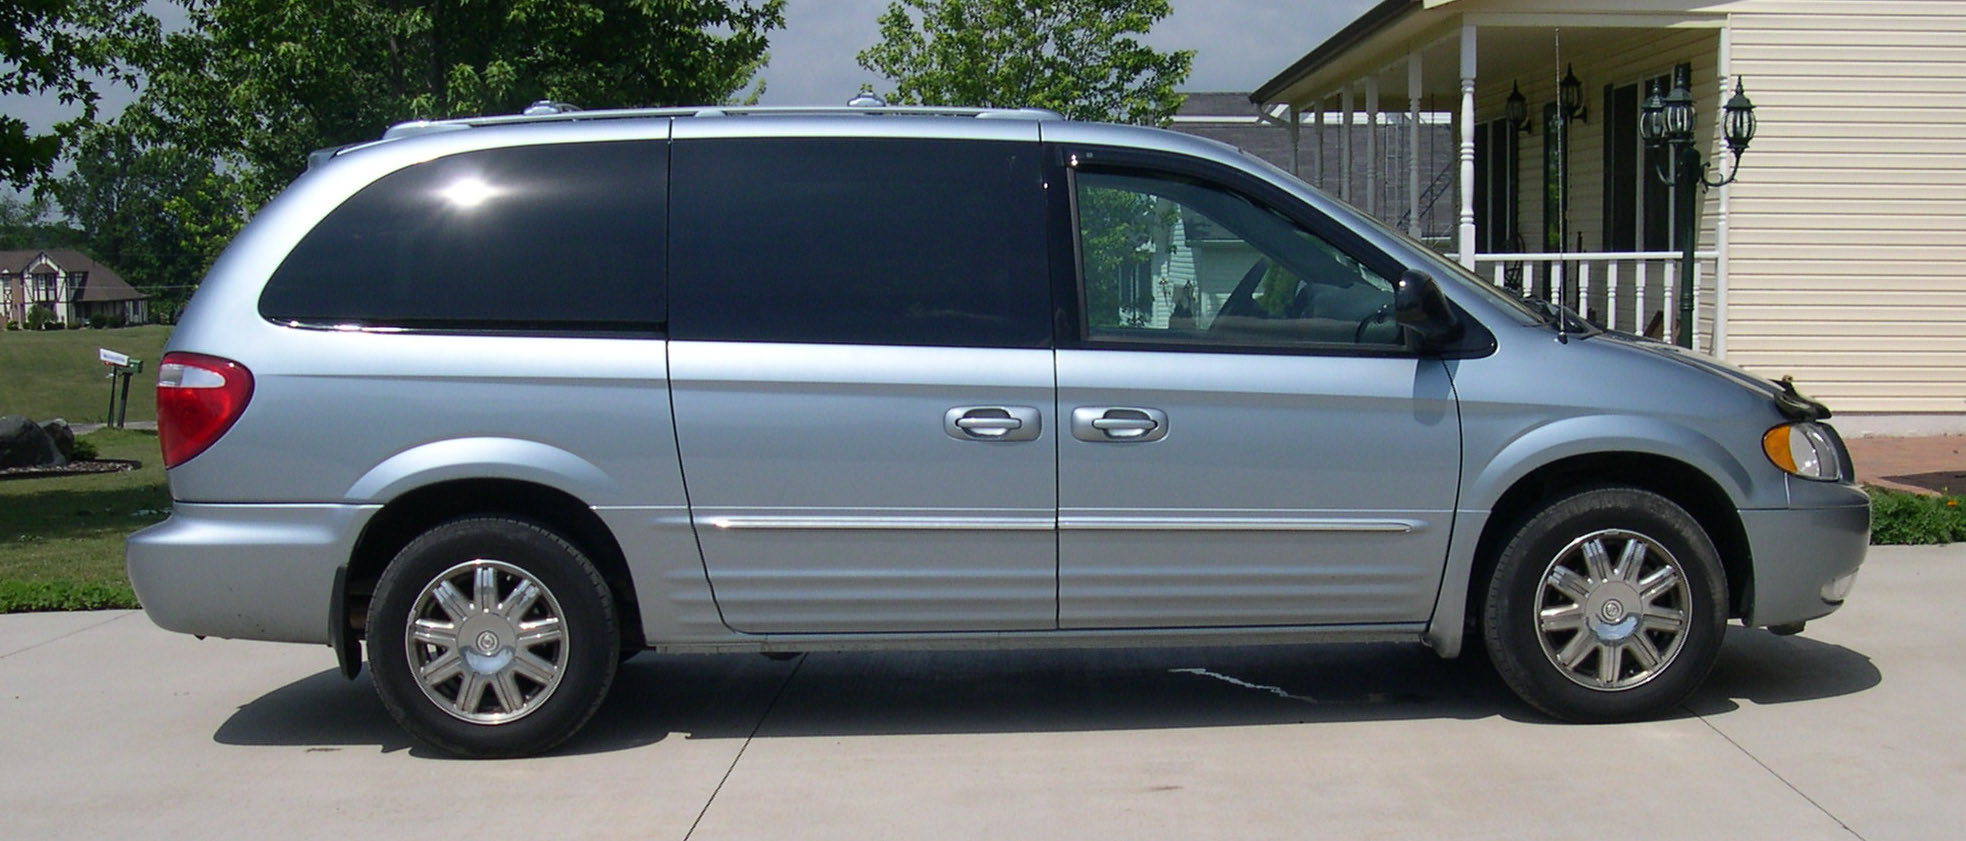 Download chrysler-town-and-country-2005-2.jpg